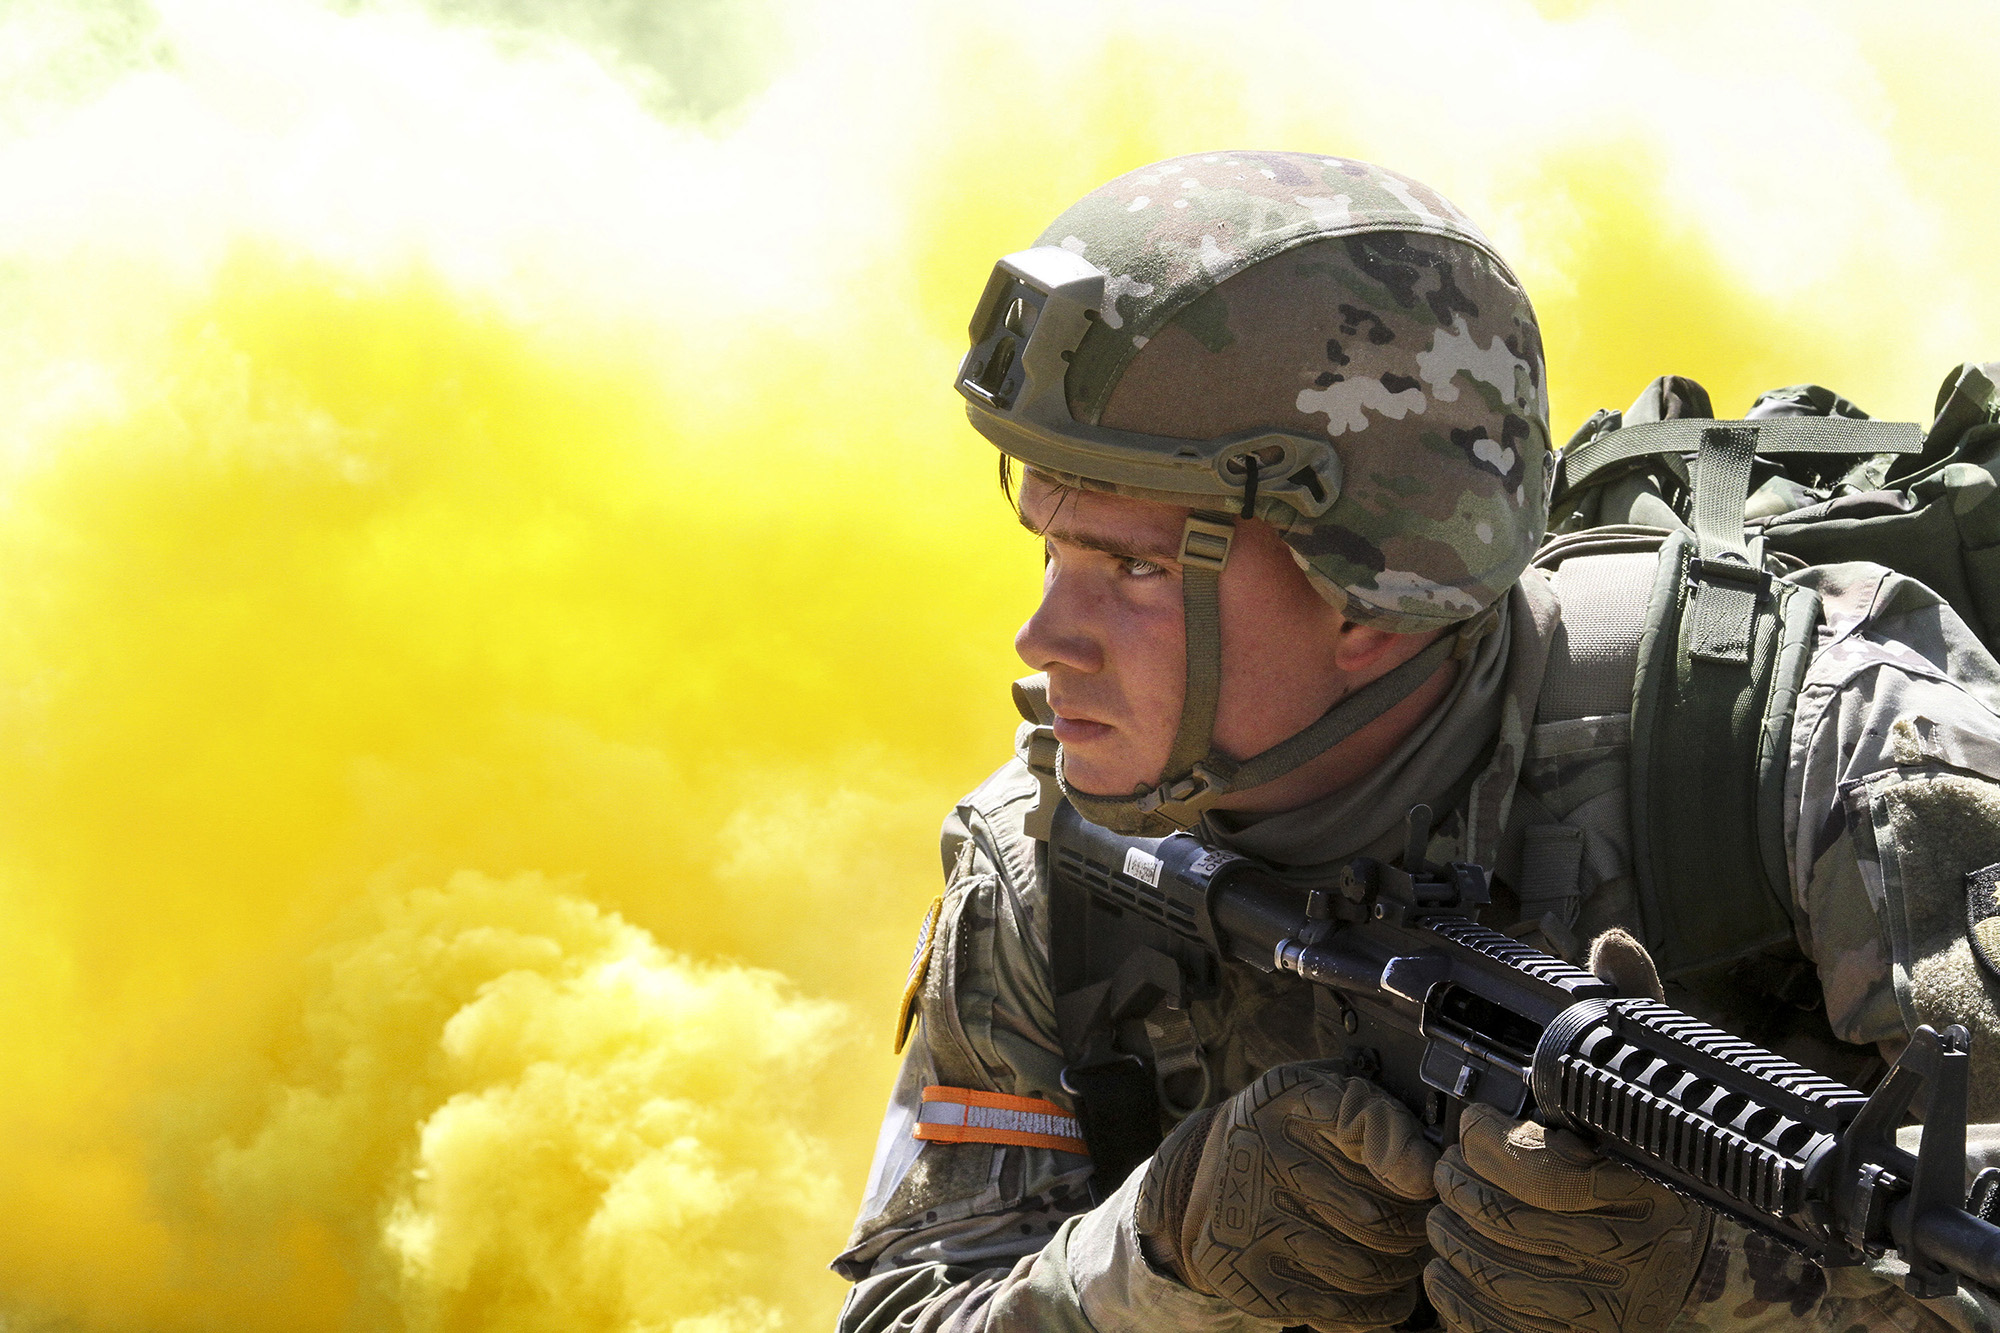 Yellow smoke billows as Spc. Caleb Romero of the California National Guard's Headquarters Company, 143rd Military Police Battalion, 49th Military Police Brigade, scans his sector March 31, 2021, during the mystery event of Cal Guard's Best Warrior Competition at Camp Roberts, Calif. (Staff Sgt. Eddie Siguenza/Army National Guard)